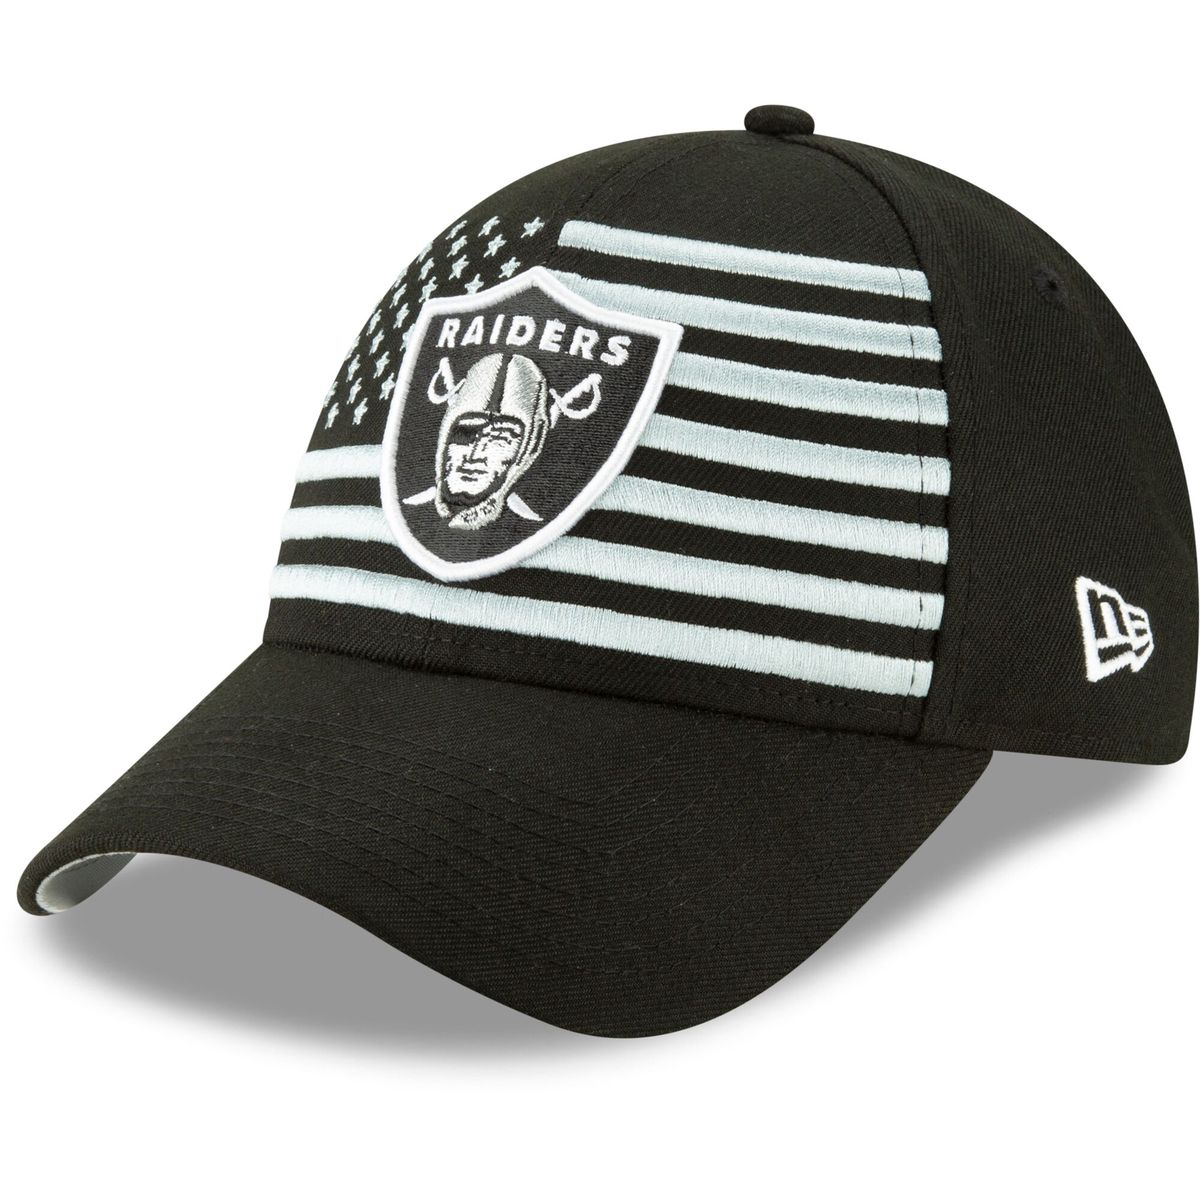 24db447120f31 The New Era 2019 NFL Draft hats drop with new looks for every team ...